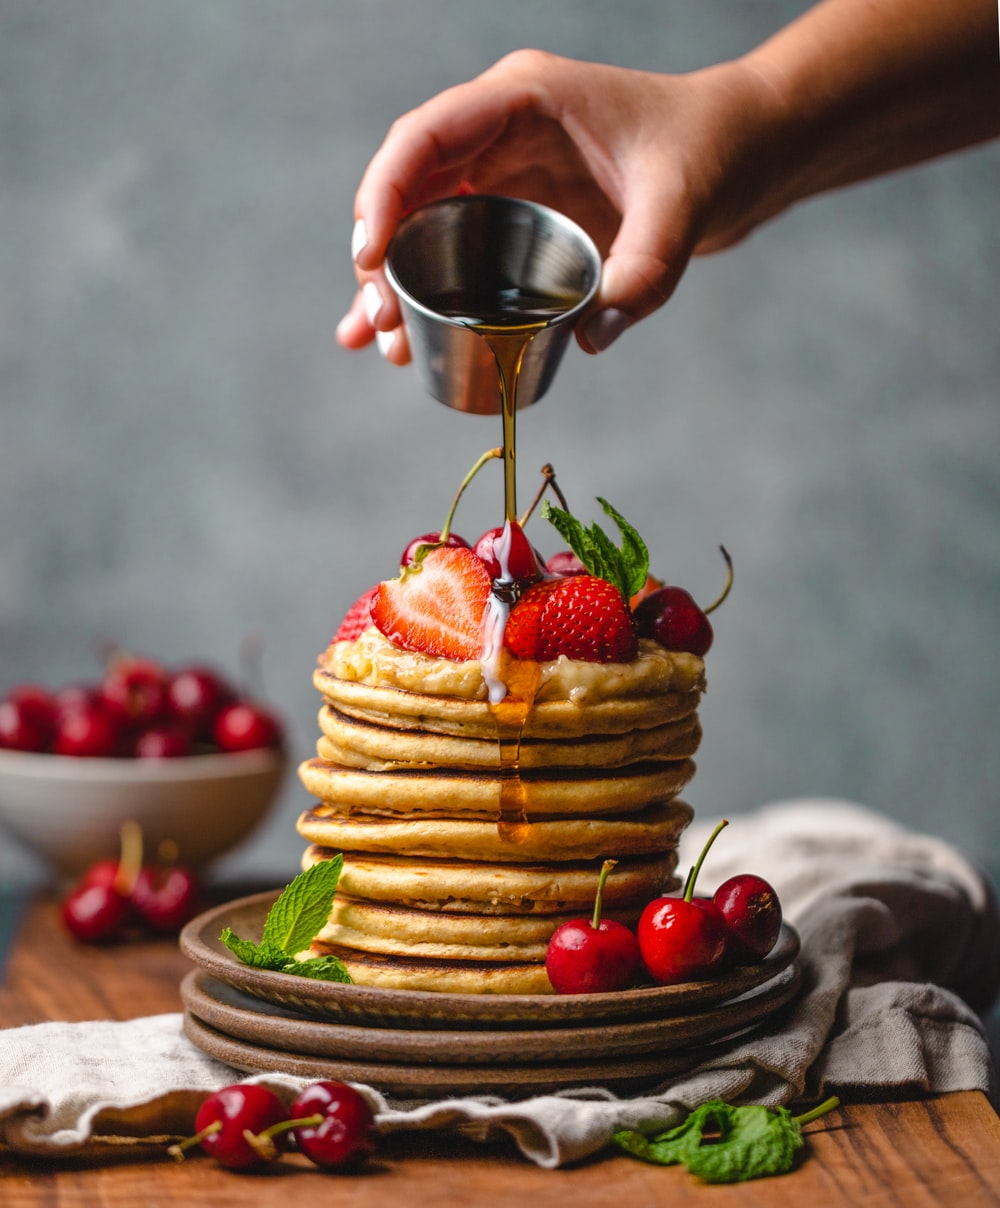 person pouring syrup on pancake